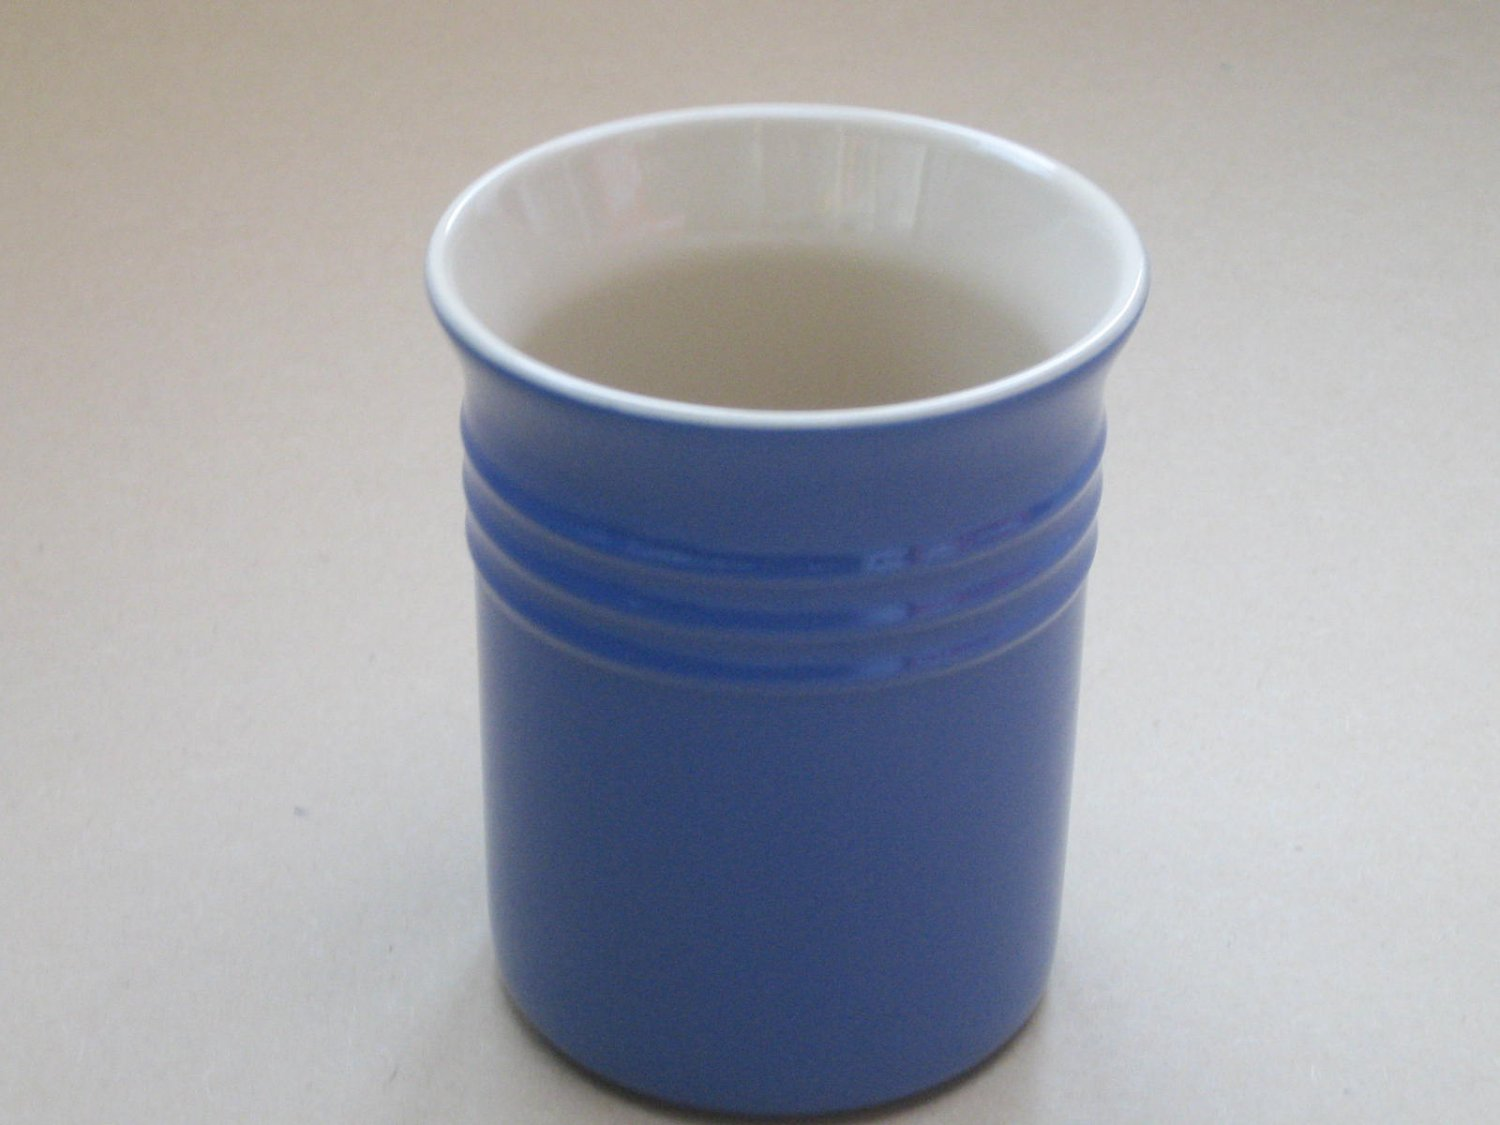 Le Creuset Stoneware Utensil Holder Crock Blue 37.1 ounce Brand NEW